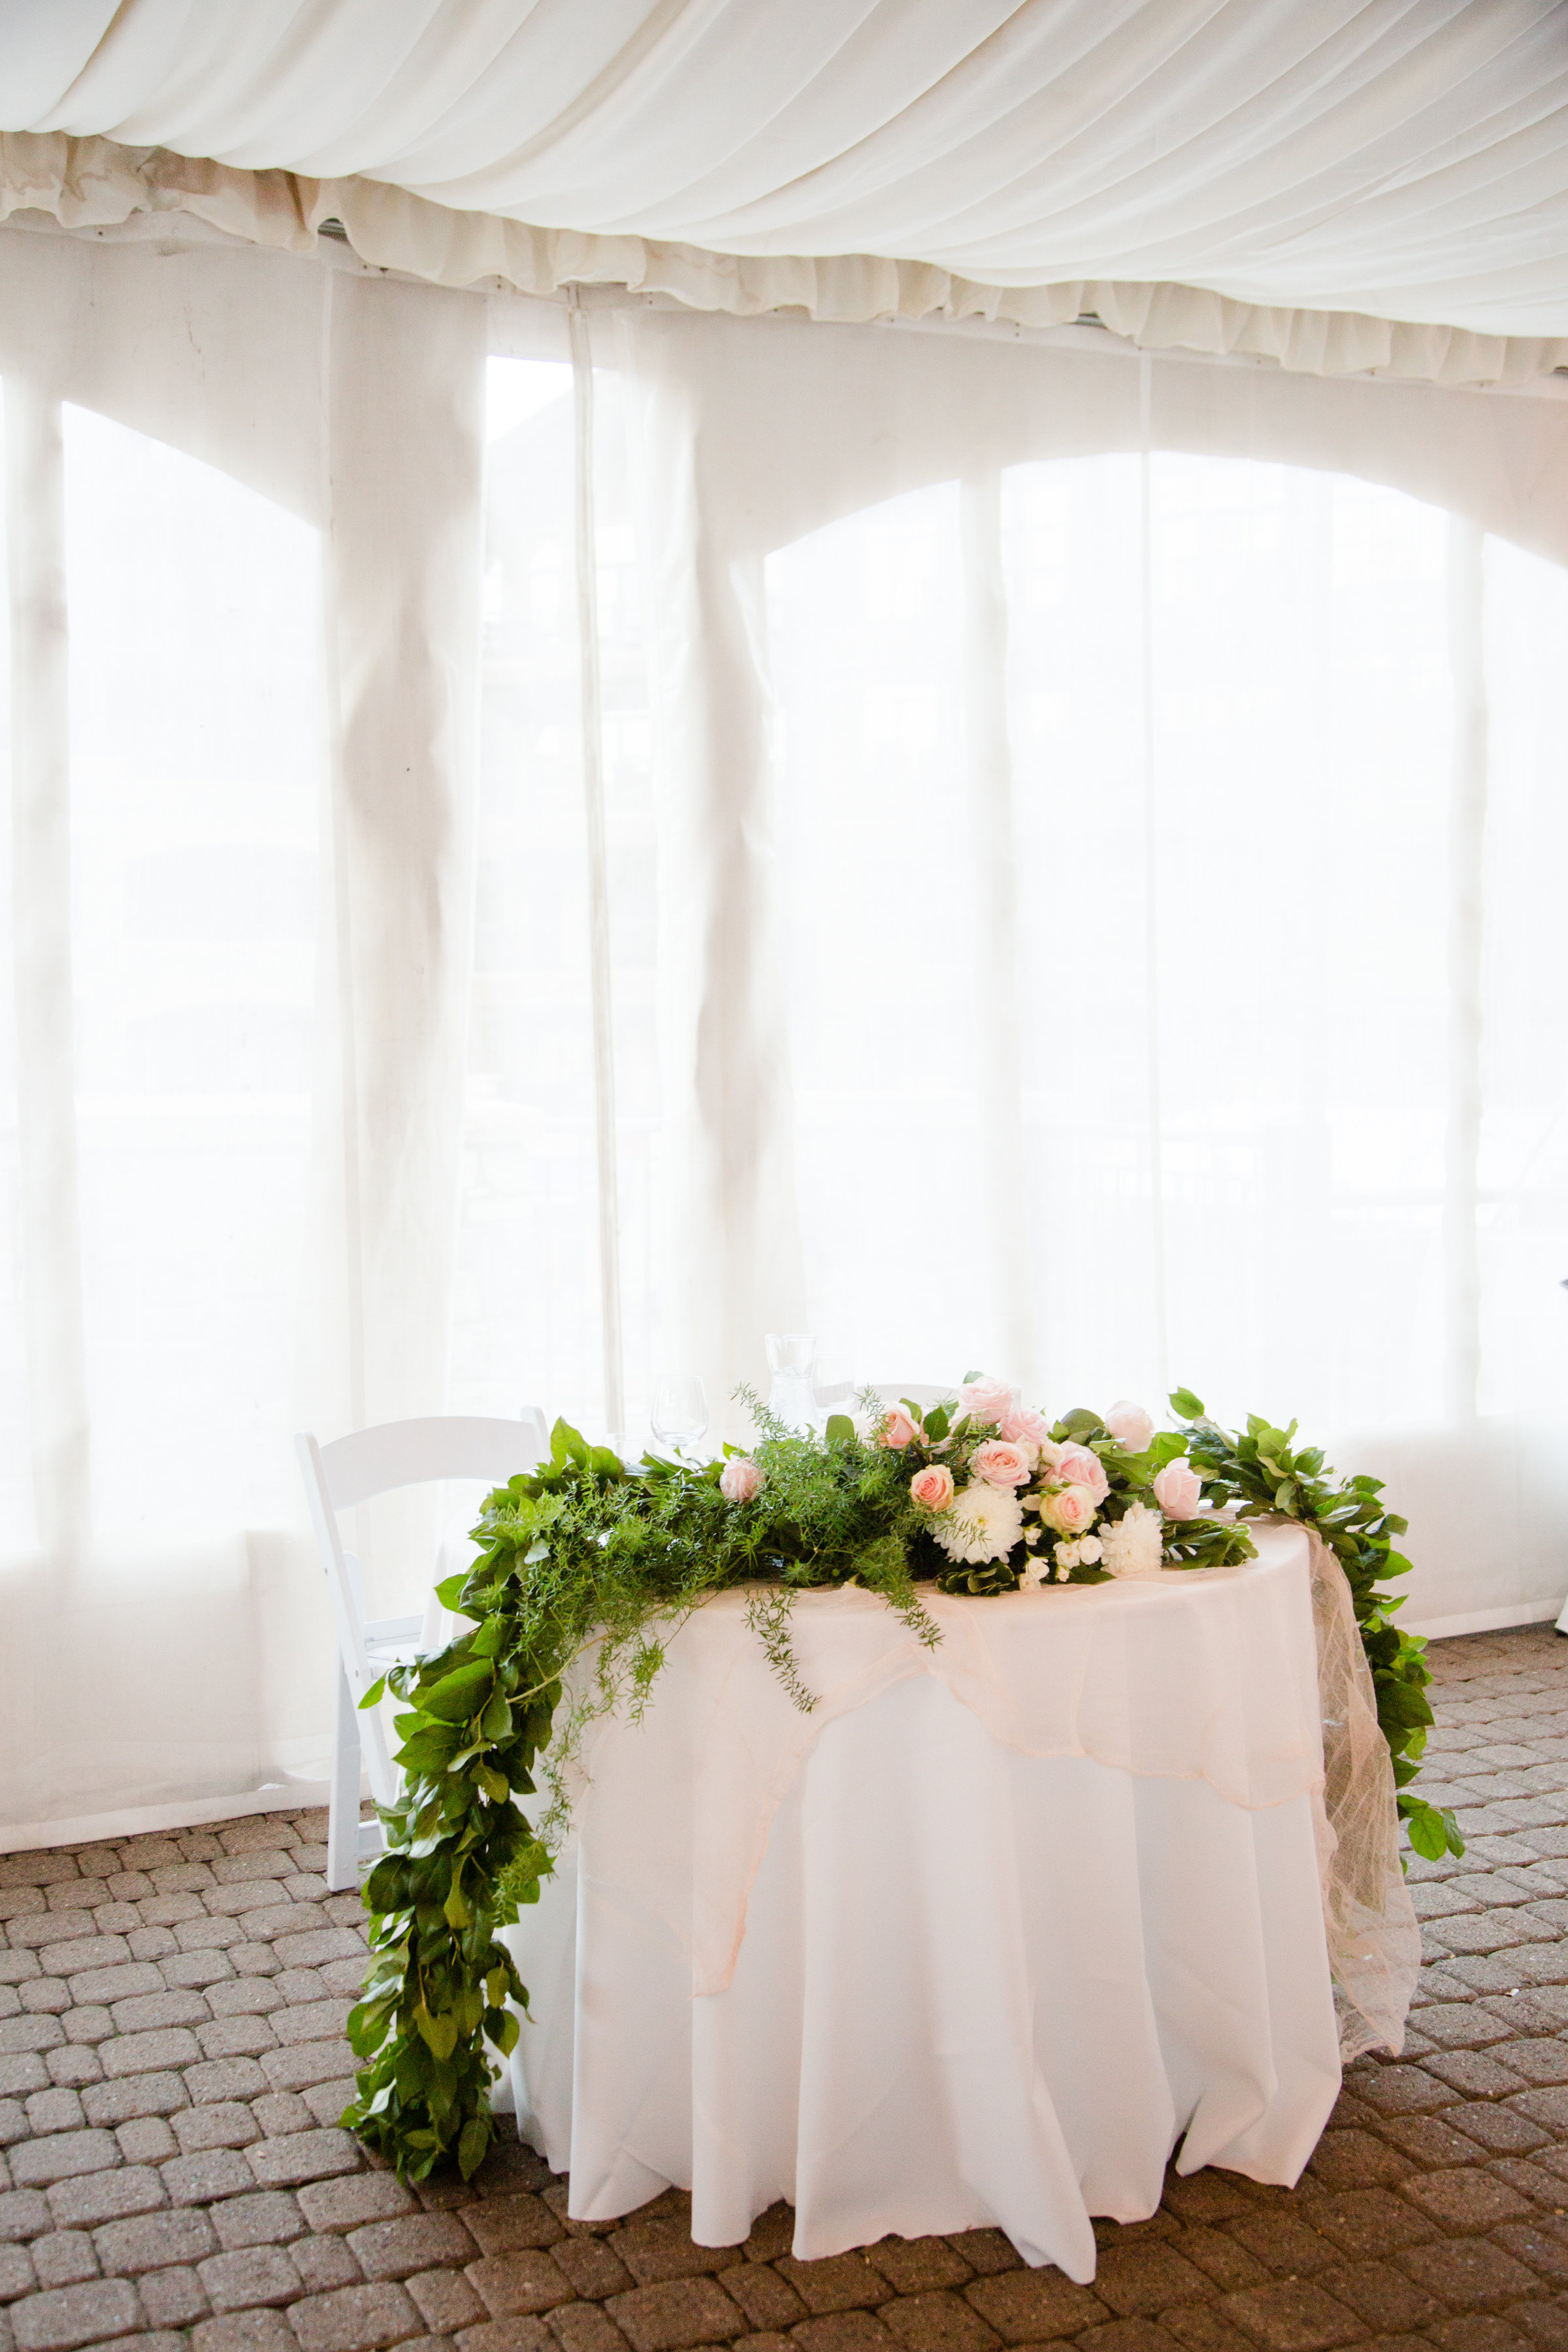 A_Floral_Affair_Gardnerville_Tahoe_Reno_Wedding_Florist_Reception_Sweetheart_Table